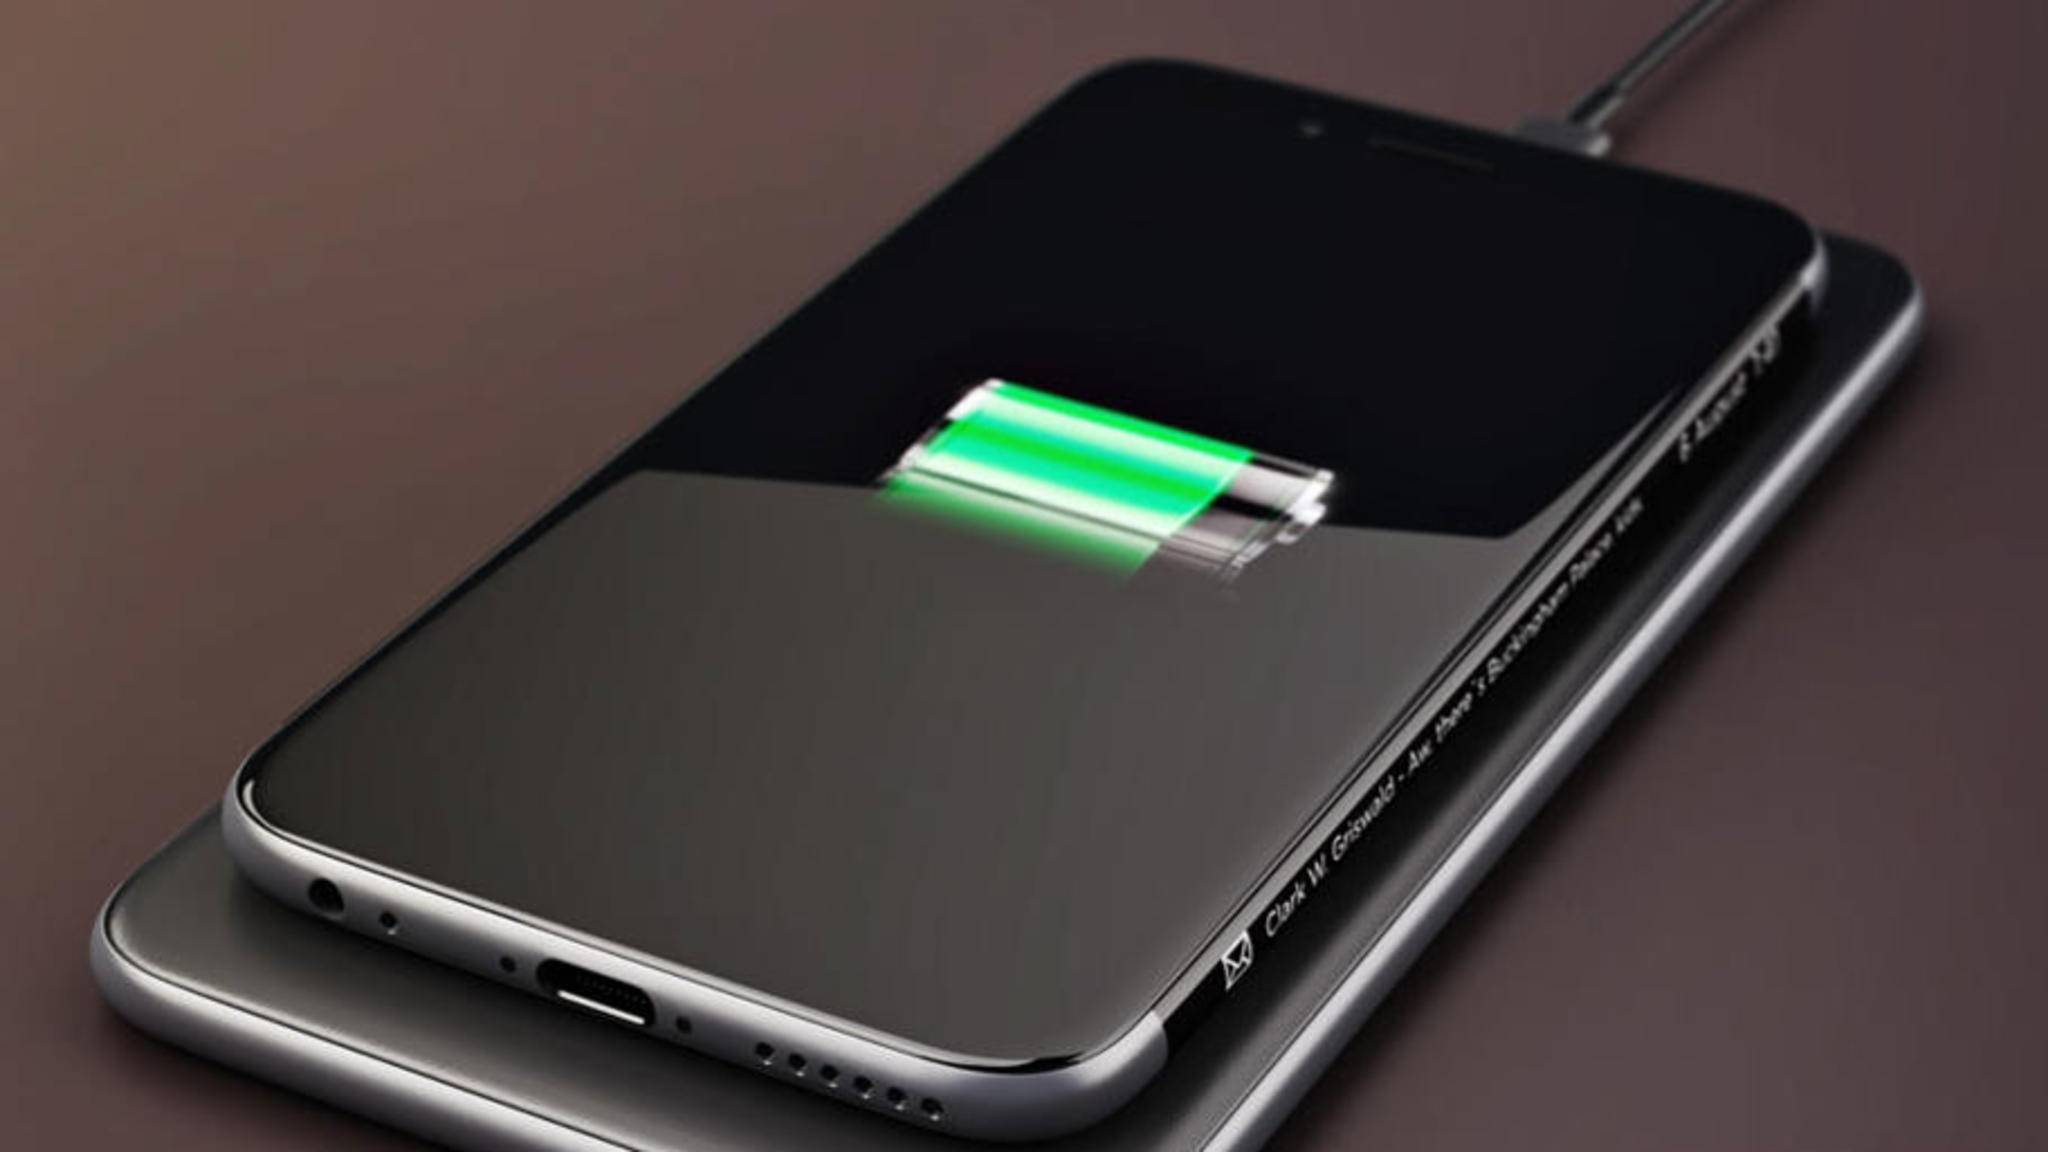 Kommt das iPhone 2019 mit bidirektionalem Wireless Charging?